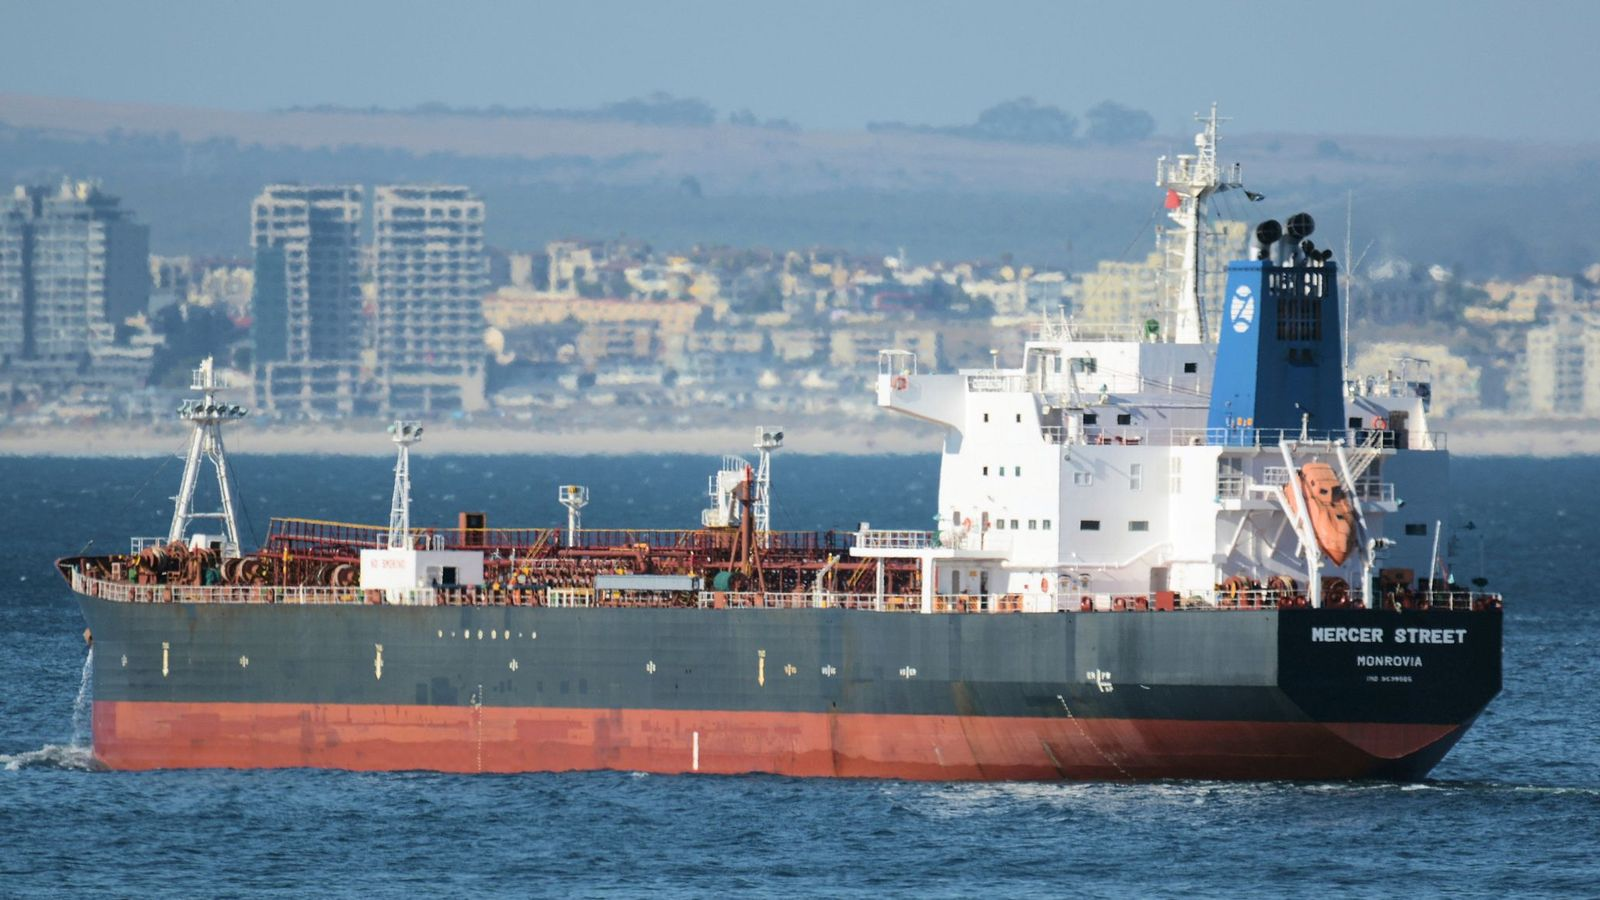 Oil tanker attack: British special forces investigating suspected Iranian attack on MV Mercer Street